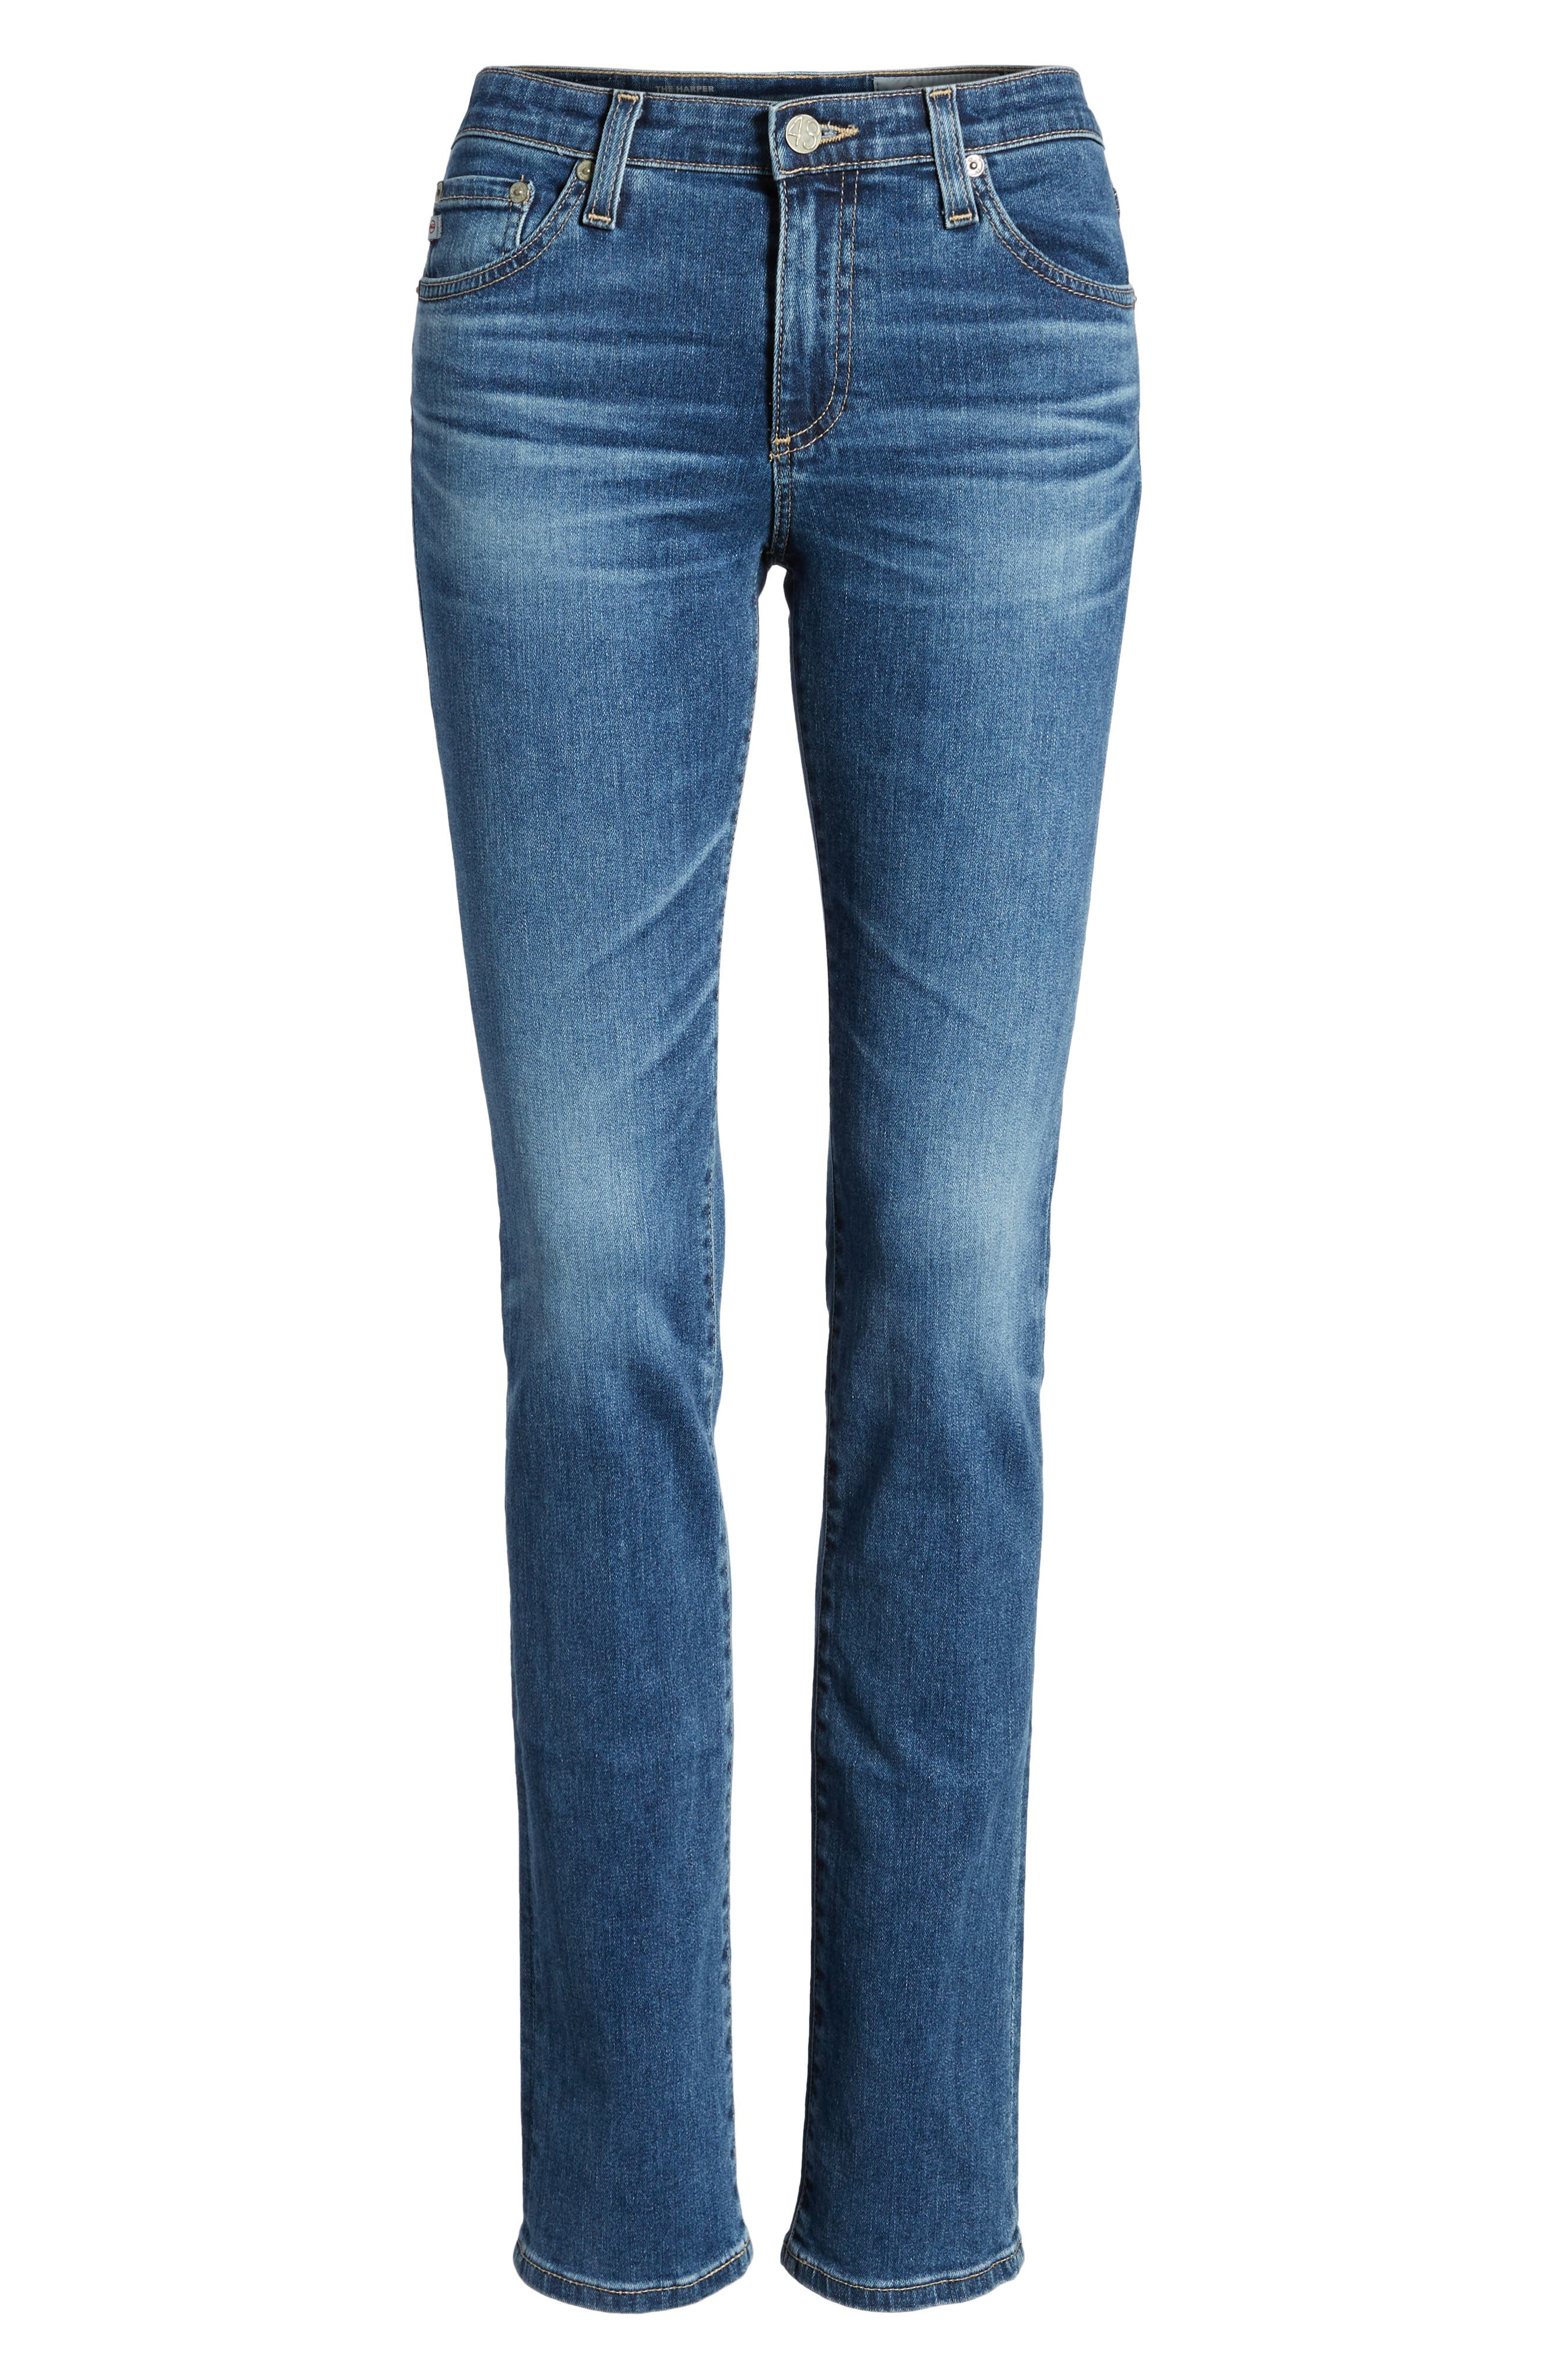 Harper Slim Straight Leg Jeans,                             Alternate thumbnail 7, color,                             10 YEARS CAMBRIA